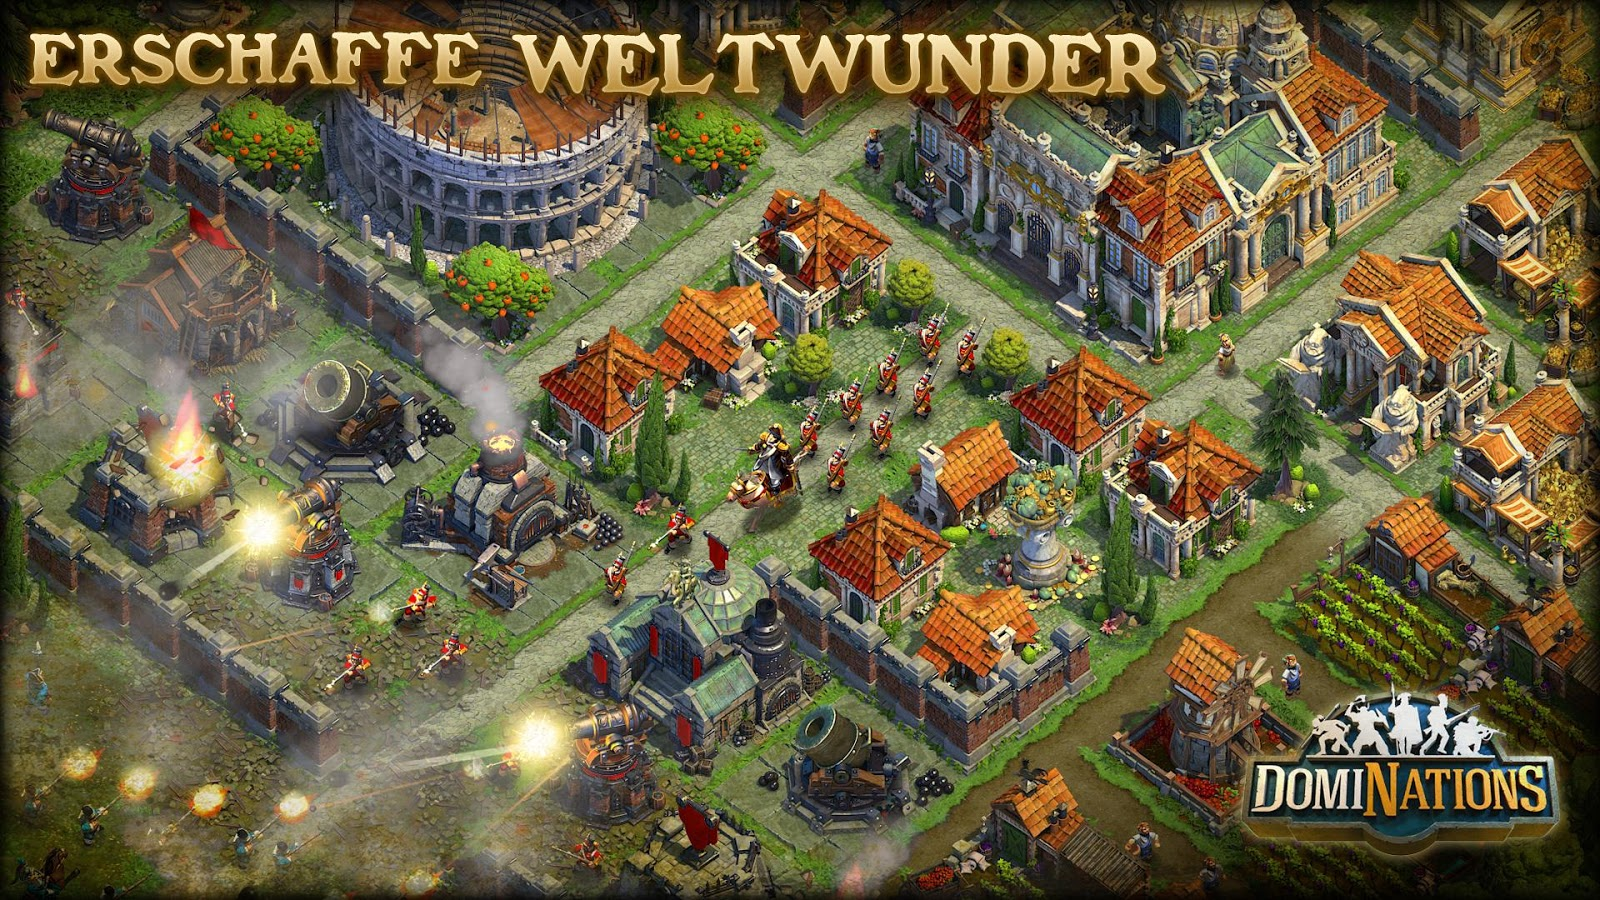 dominations-tipps-und-hilfe-fuer-einsteiger-Strategie-iphone-ipad-tipps-tricks-cheats-android-ios-windows-apps-hack-spiel-weltwunder-game-20